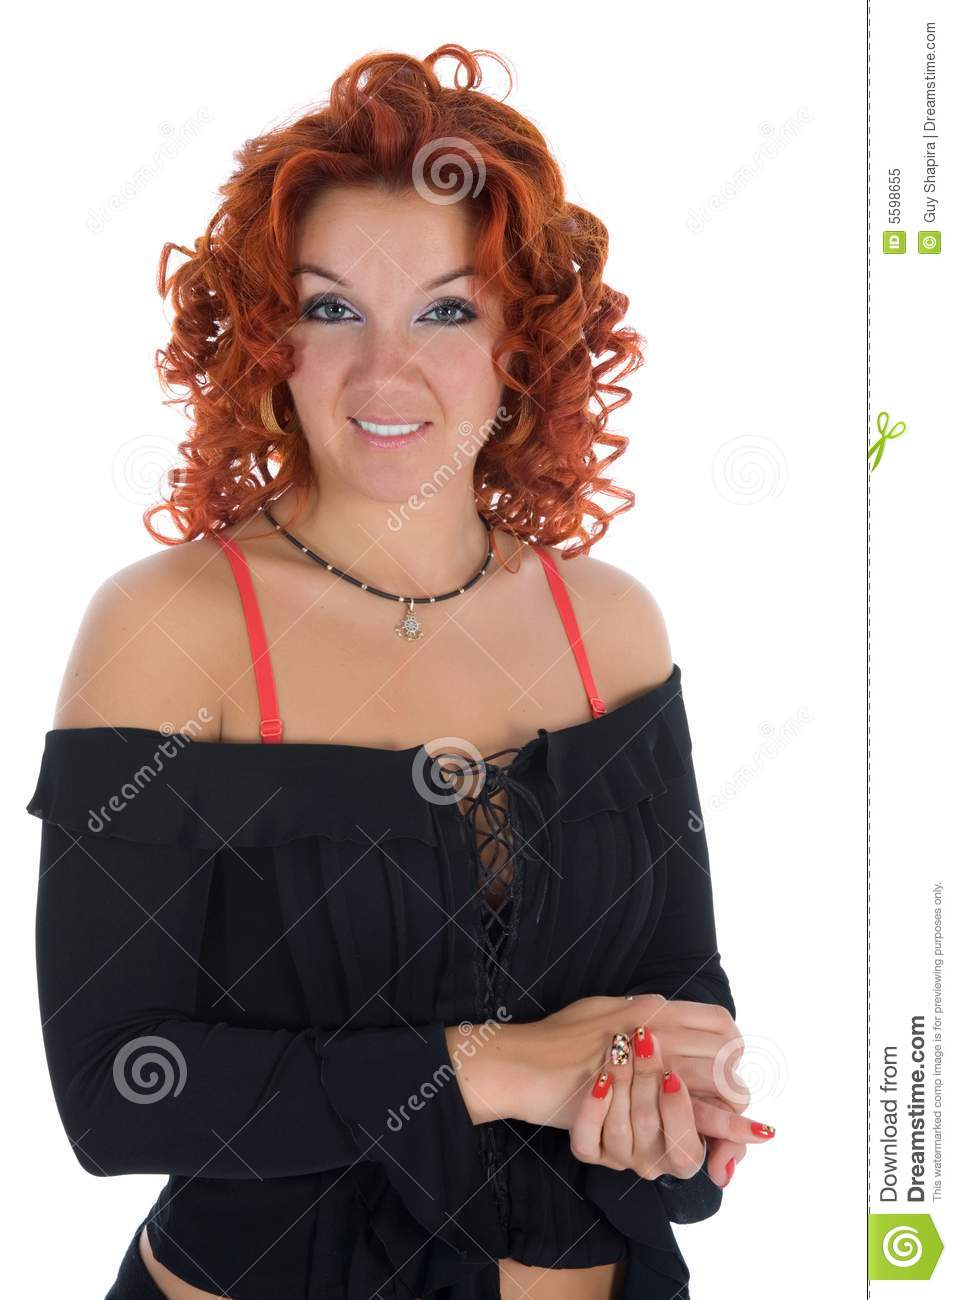 Young woman with red hair